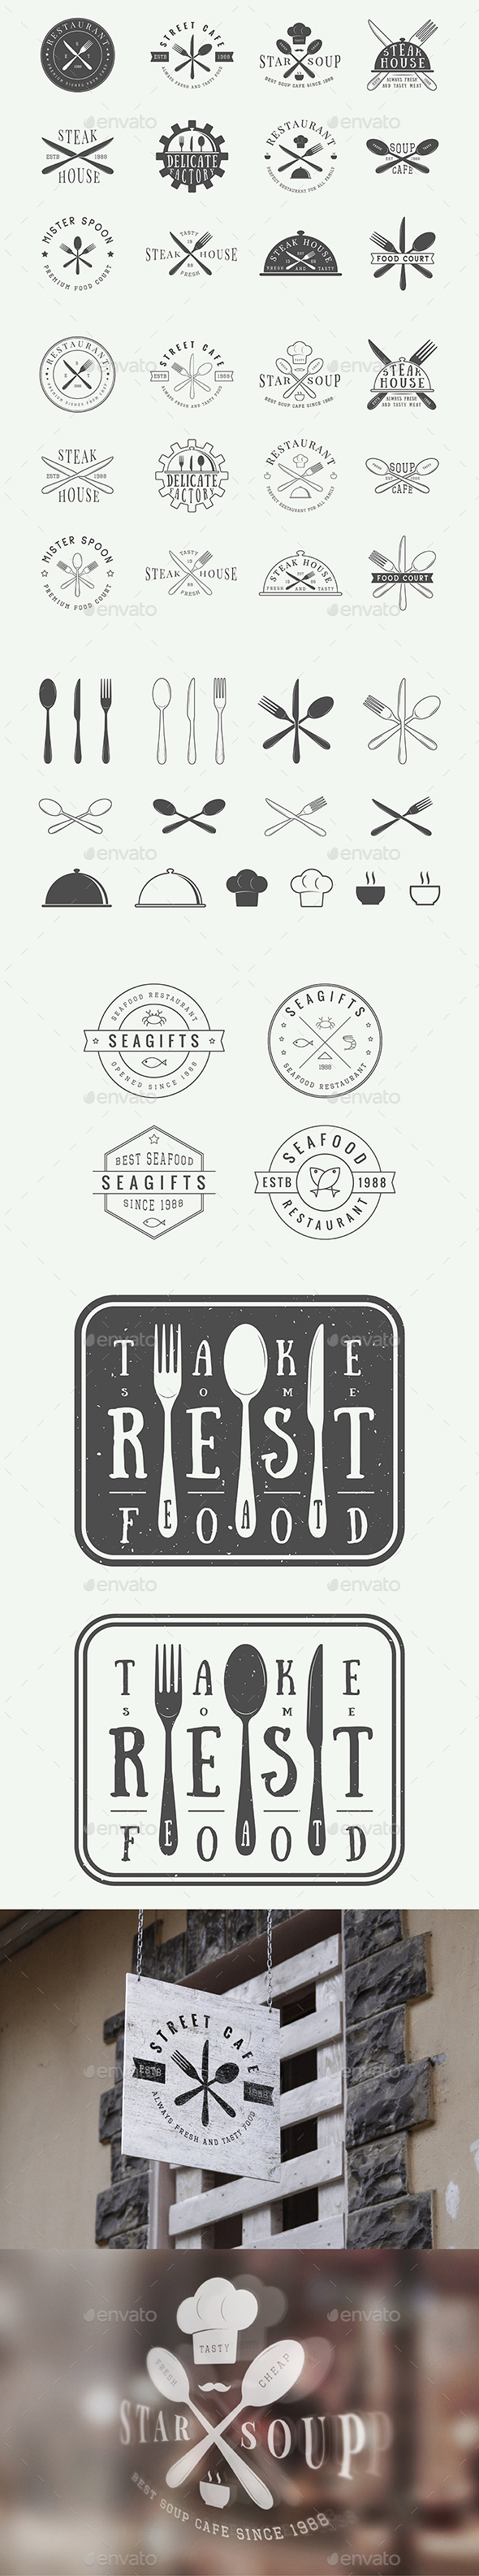 Vintage Restaurant Emblems - Badges & Stickers Web Elements